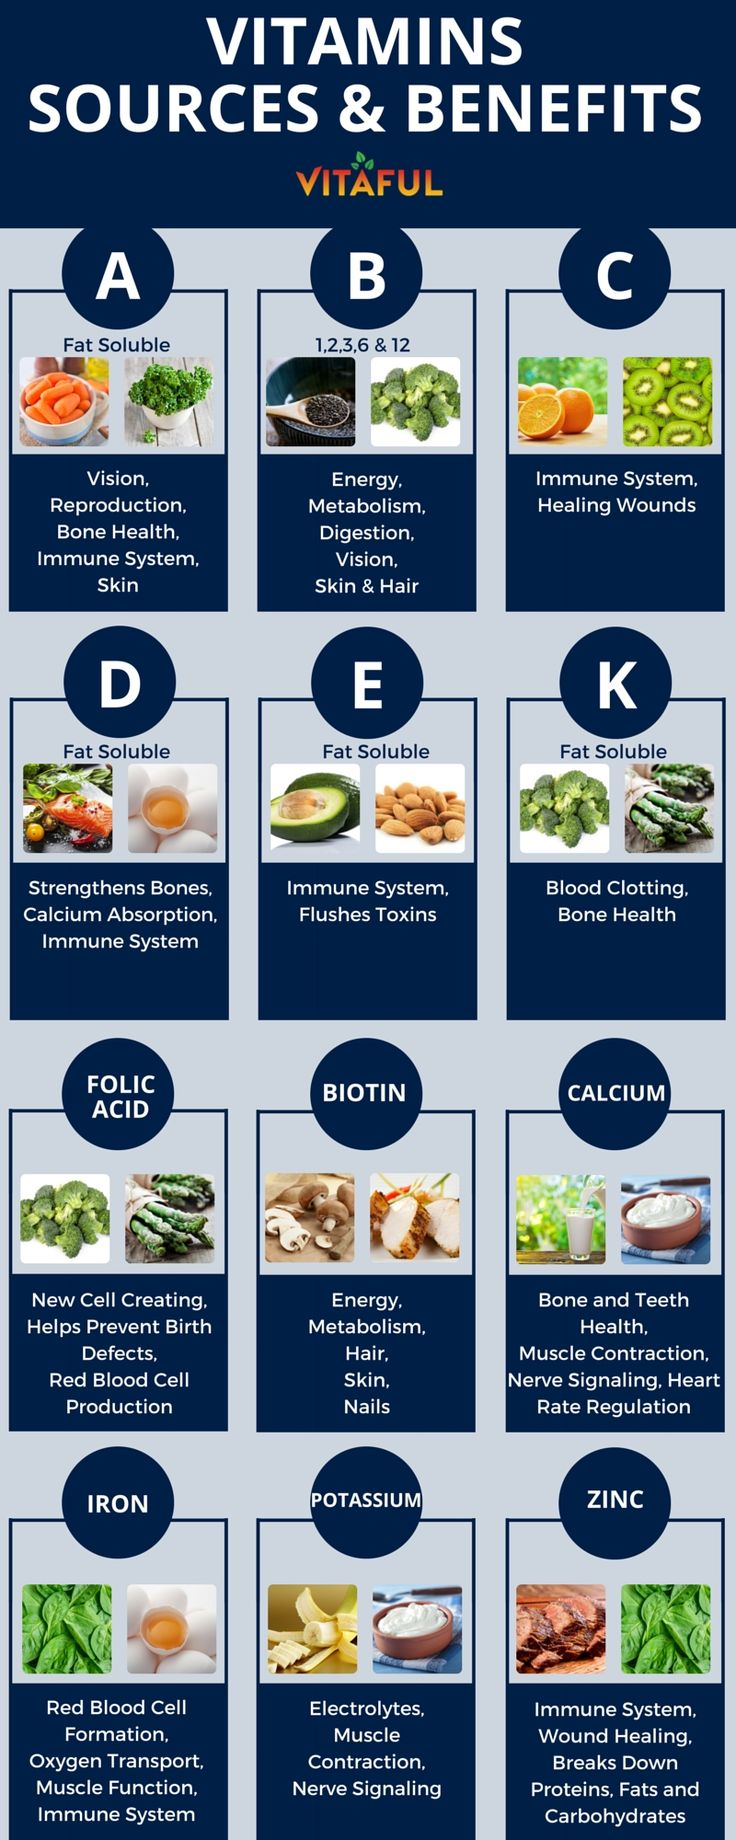 Vitamins - Food Sources and Benefits. Includes Vitamins A, B, C, D, E, K and More | Supplements | Wellness Tips | Health Infographic | #weightloss